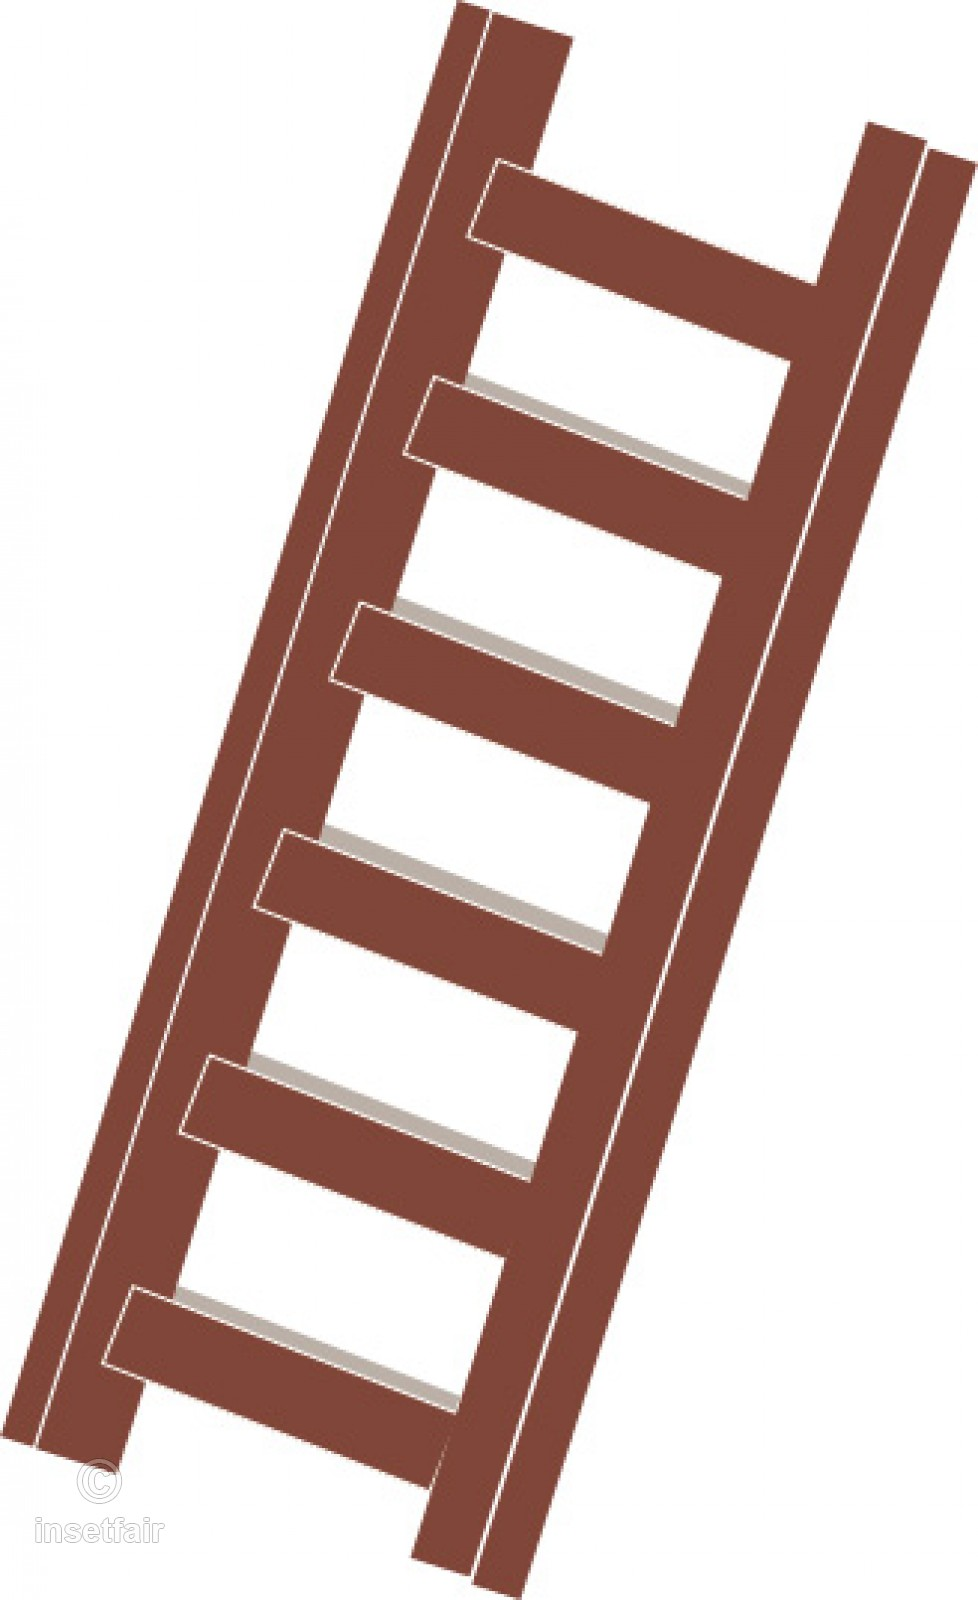 Clip art of a ladder in png format.